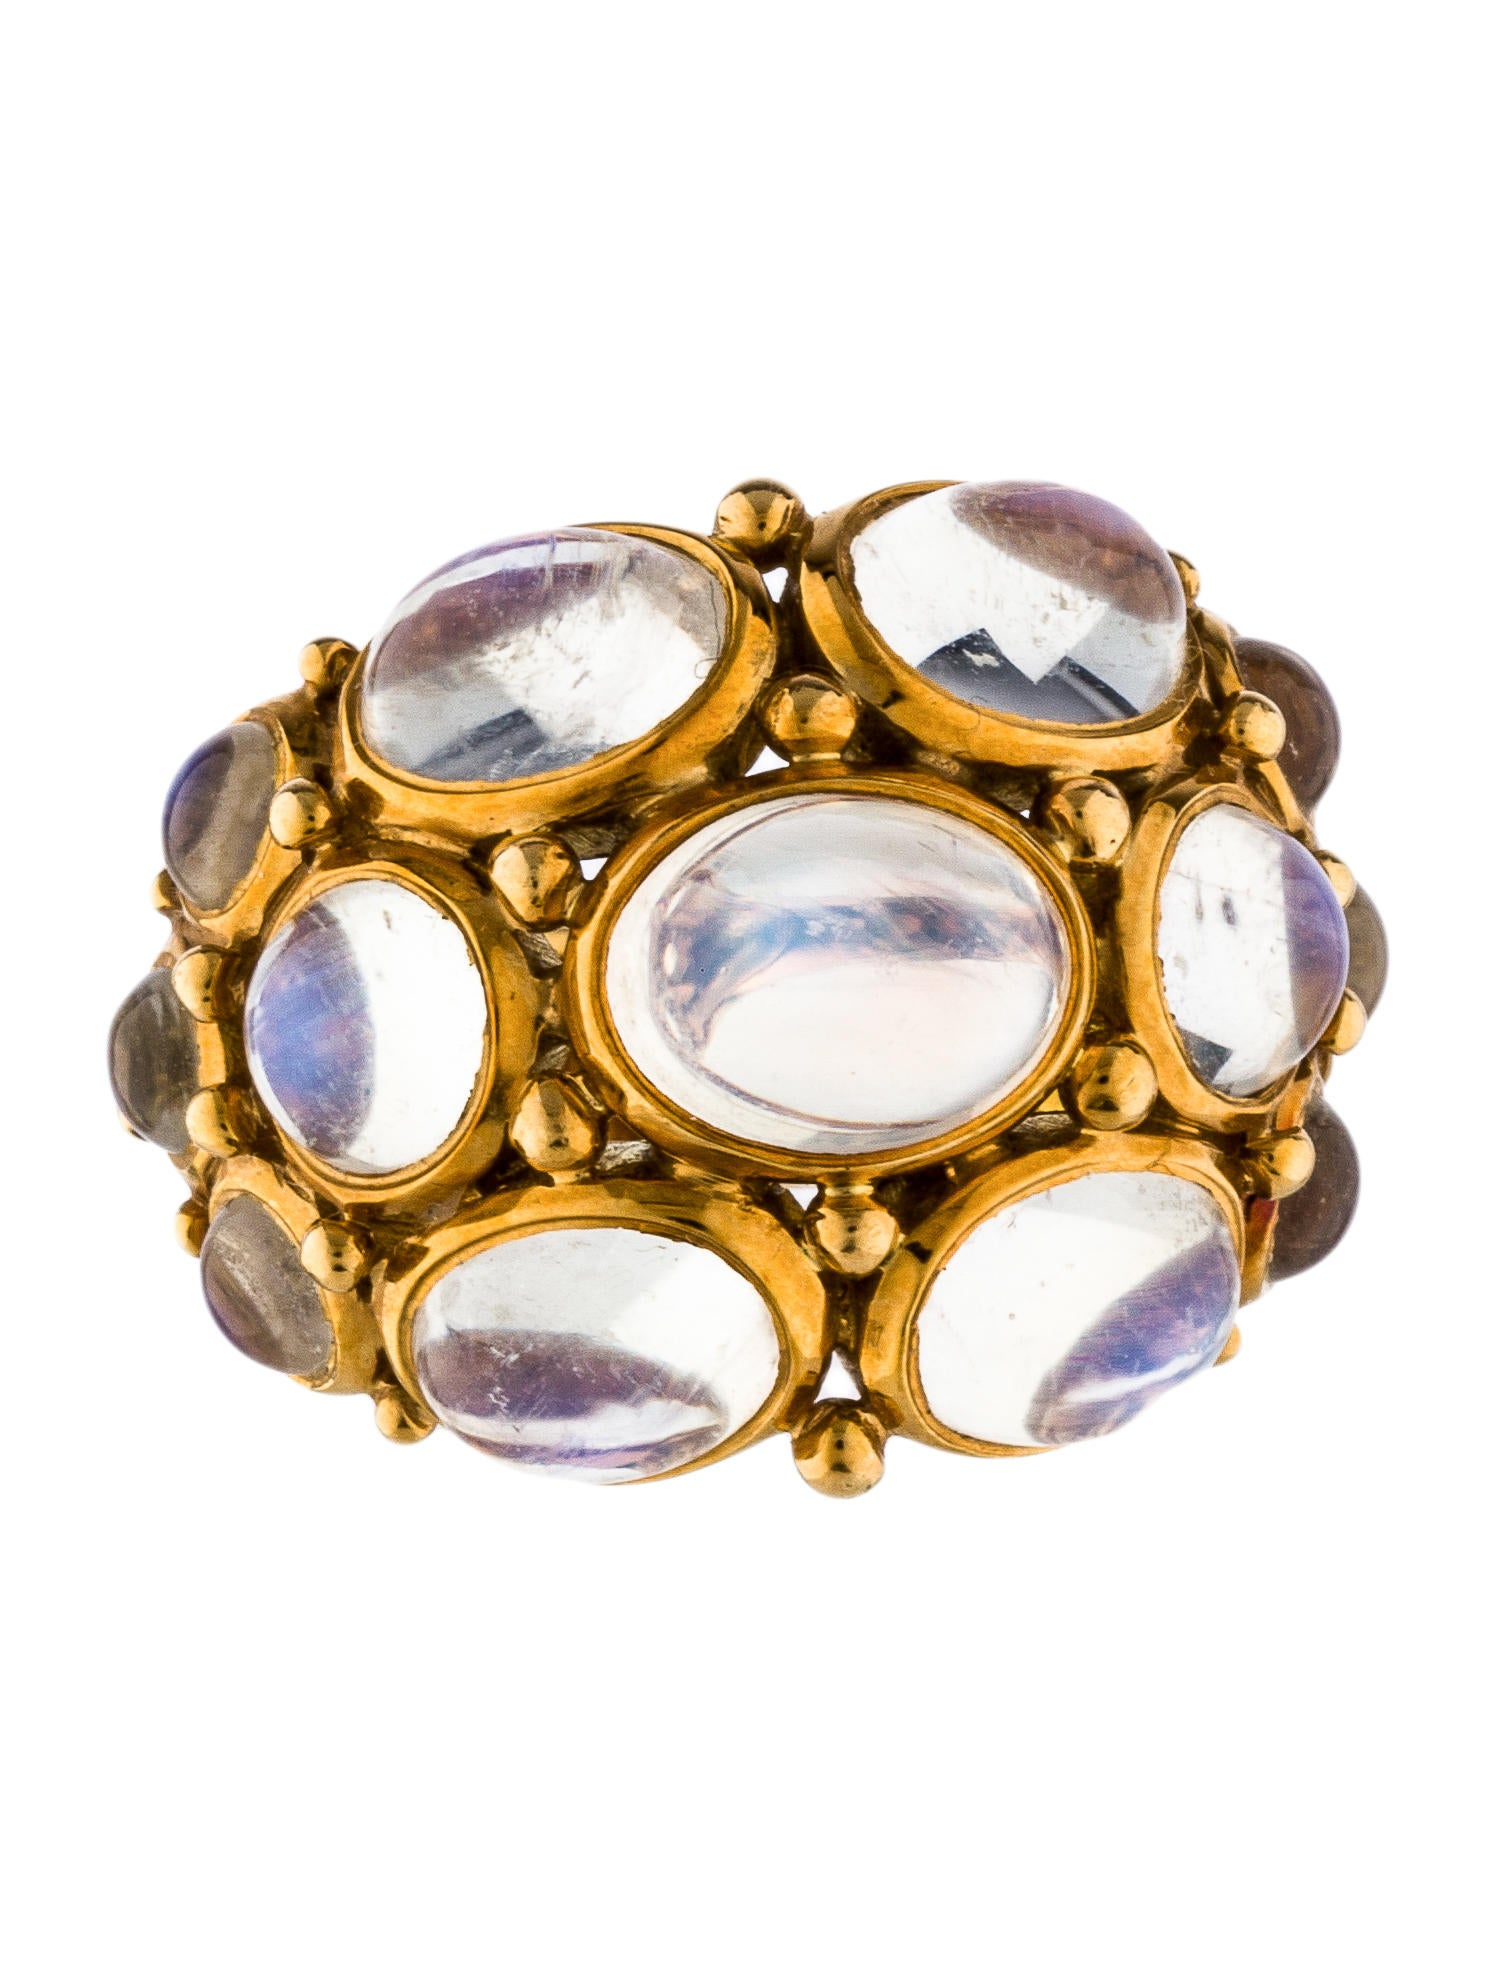 bombe jewelry temple st clair moonstone bombe ring rings tsc20491 1240